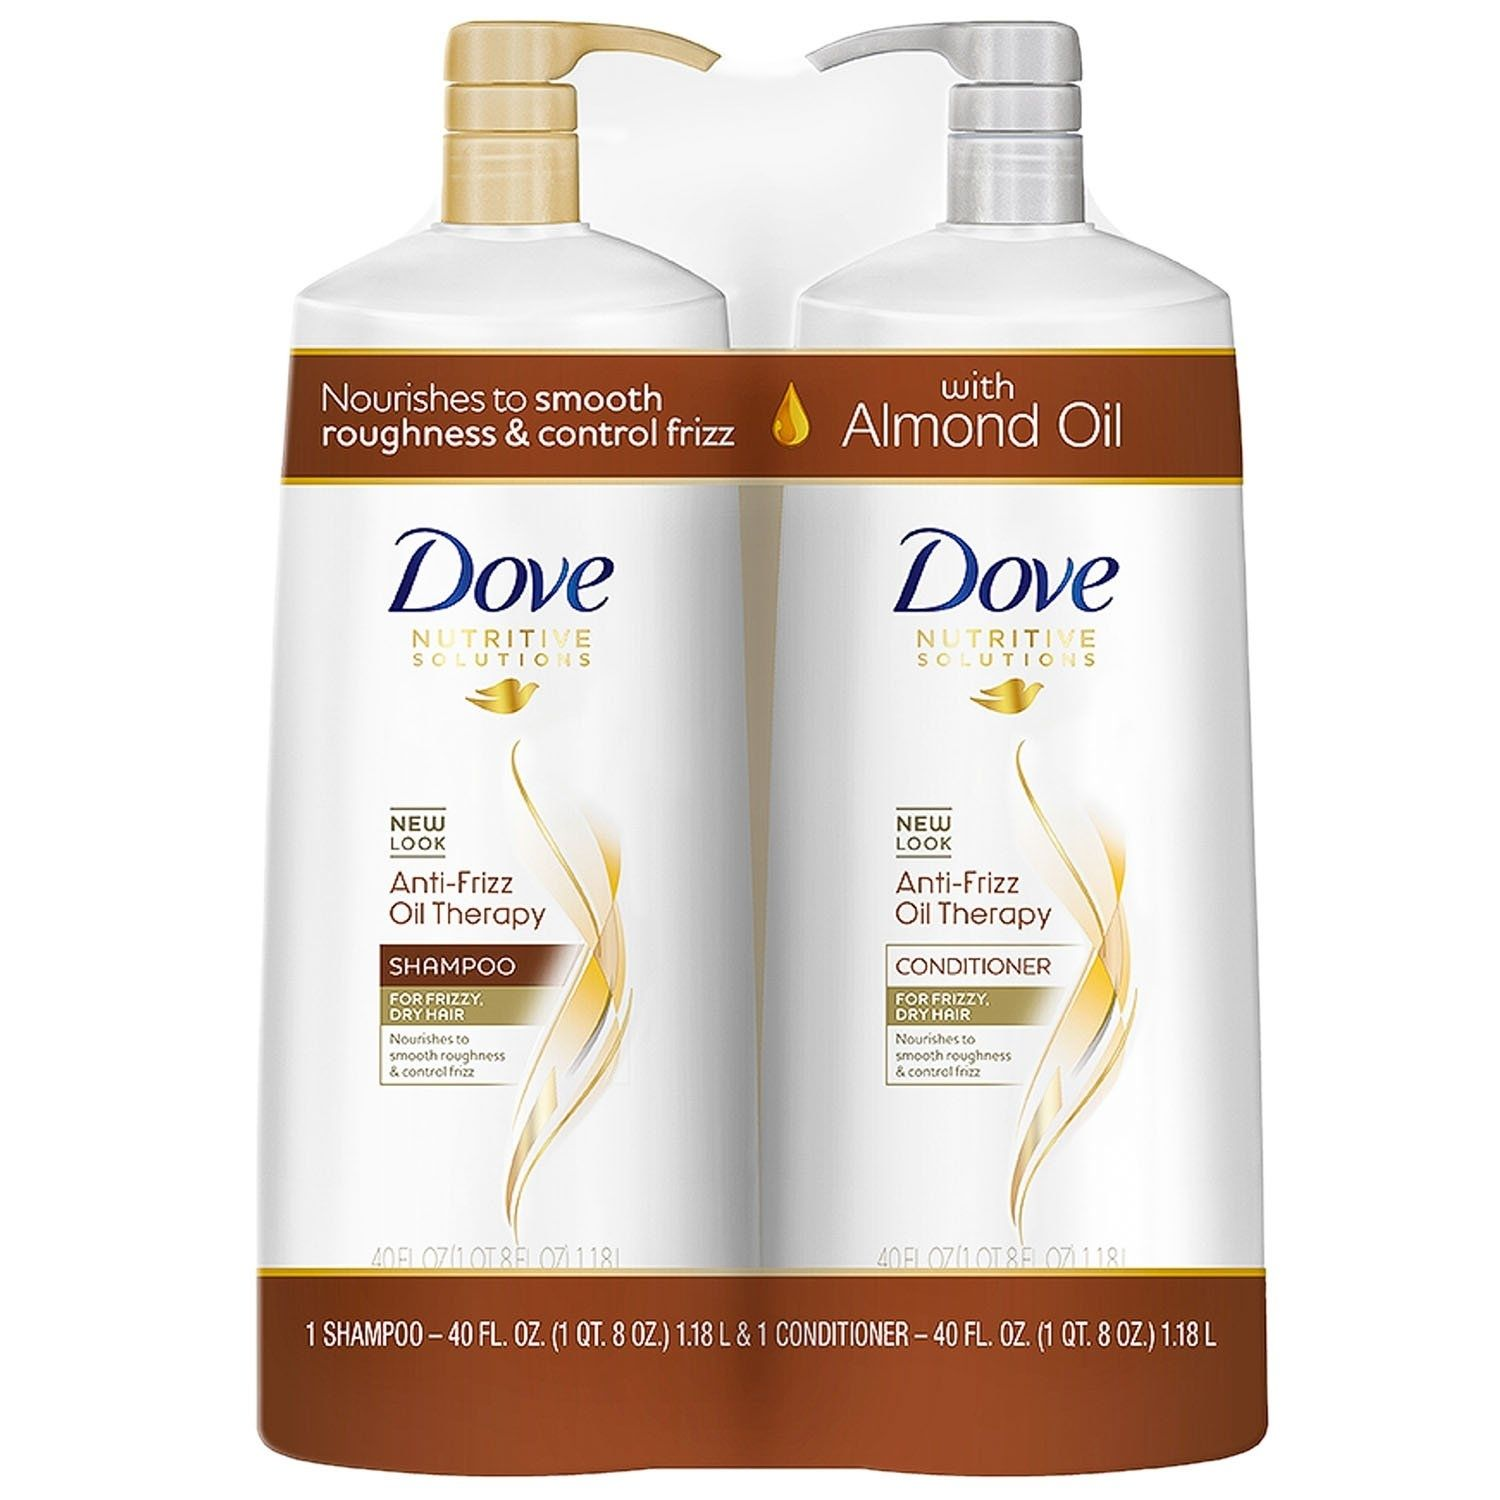 Dove Anti Frizz Oil Therapy Shampoo Conditioner 40 Fluid Ounce 2 Pack Anti Frizz Products Shampoo And Conditioner Dove Shampoo And Conditioner